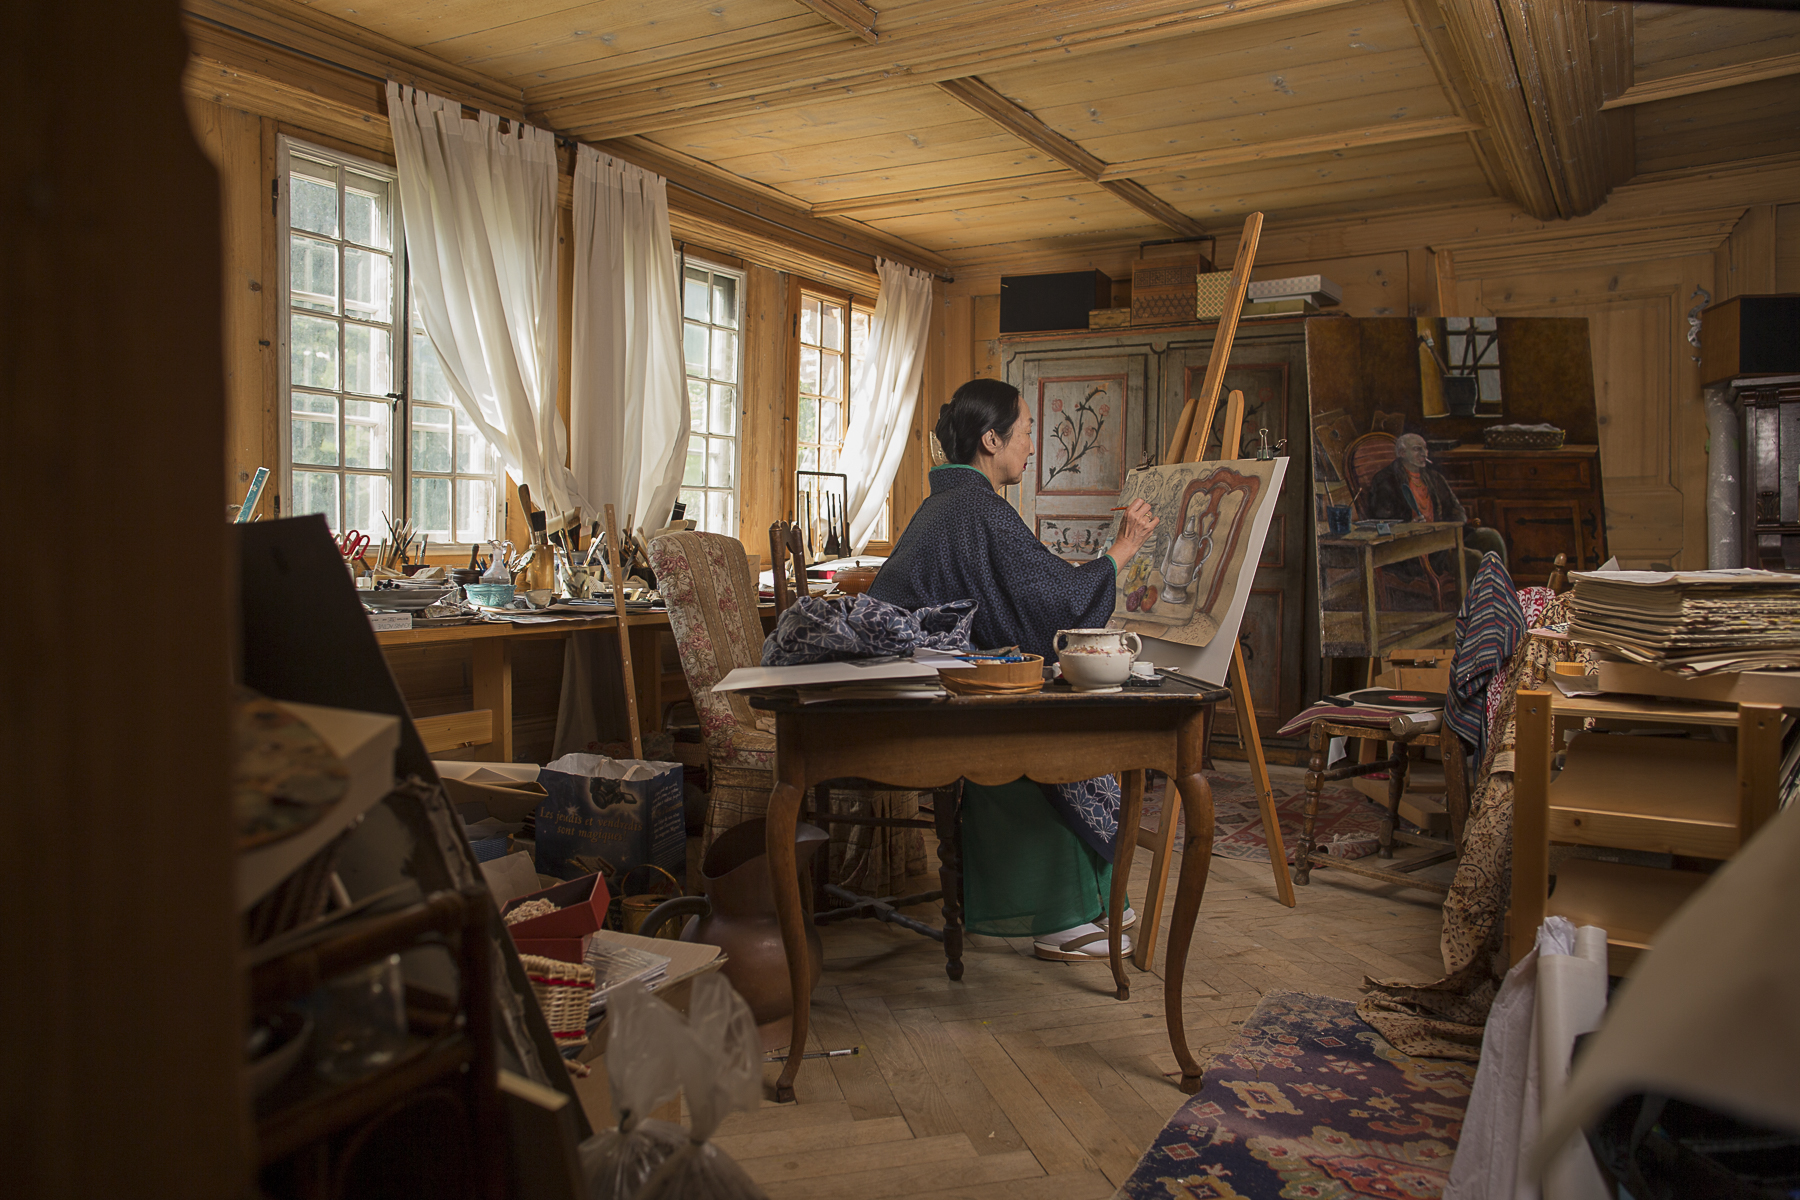 Rossinière, July 2014. Setsuko klossowska in her drawing room at the Grand Chalet.Rossinière, juillet 2014. Setsuko Klossowska dans son atelier au Grand Chalet.